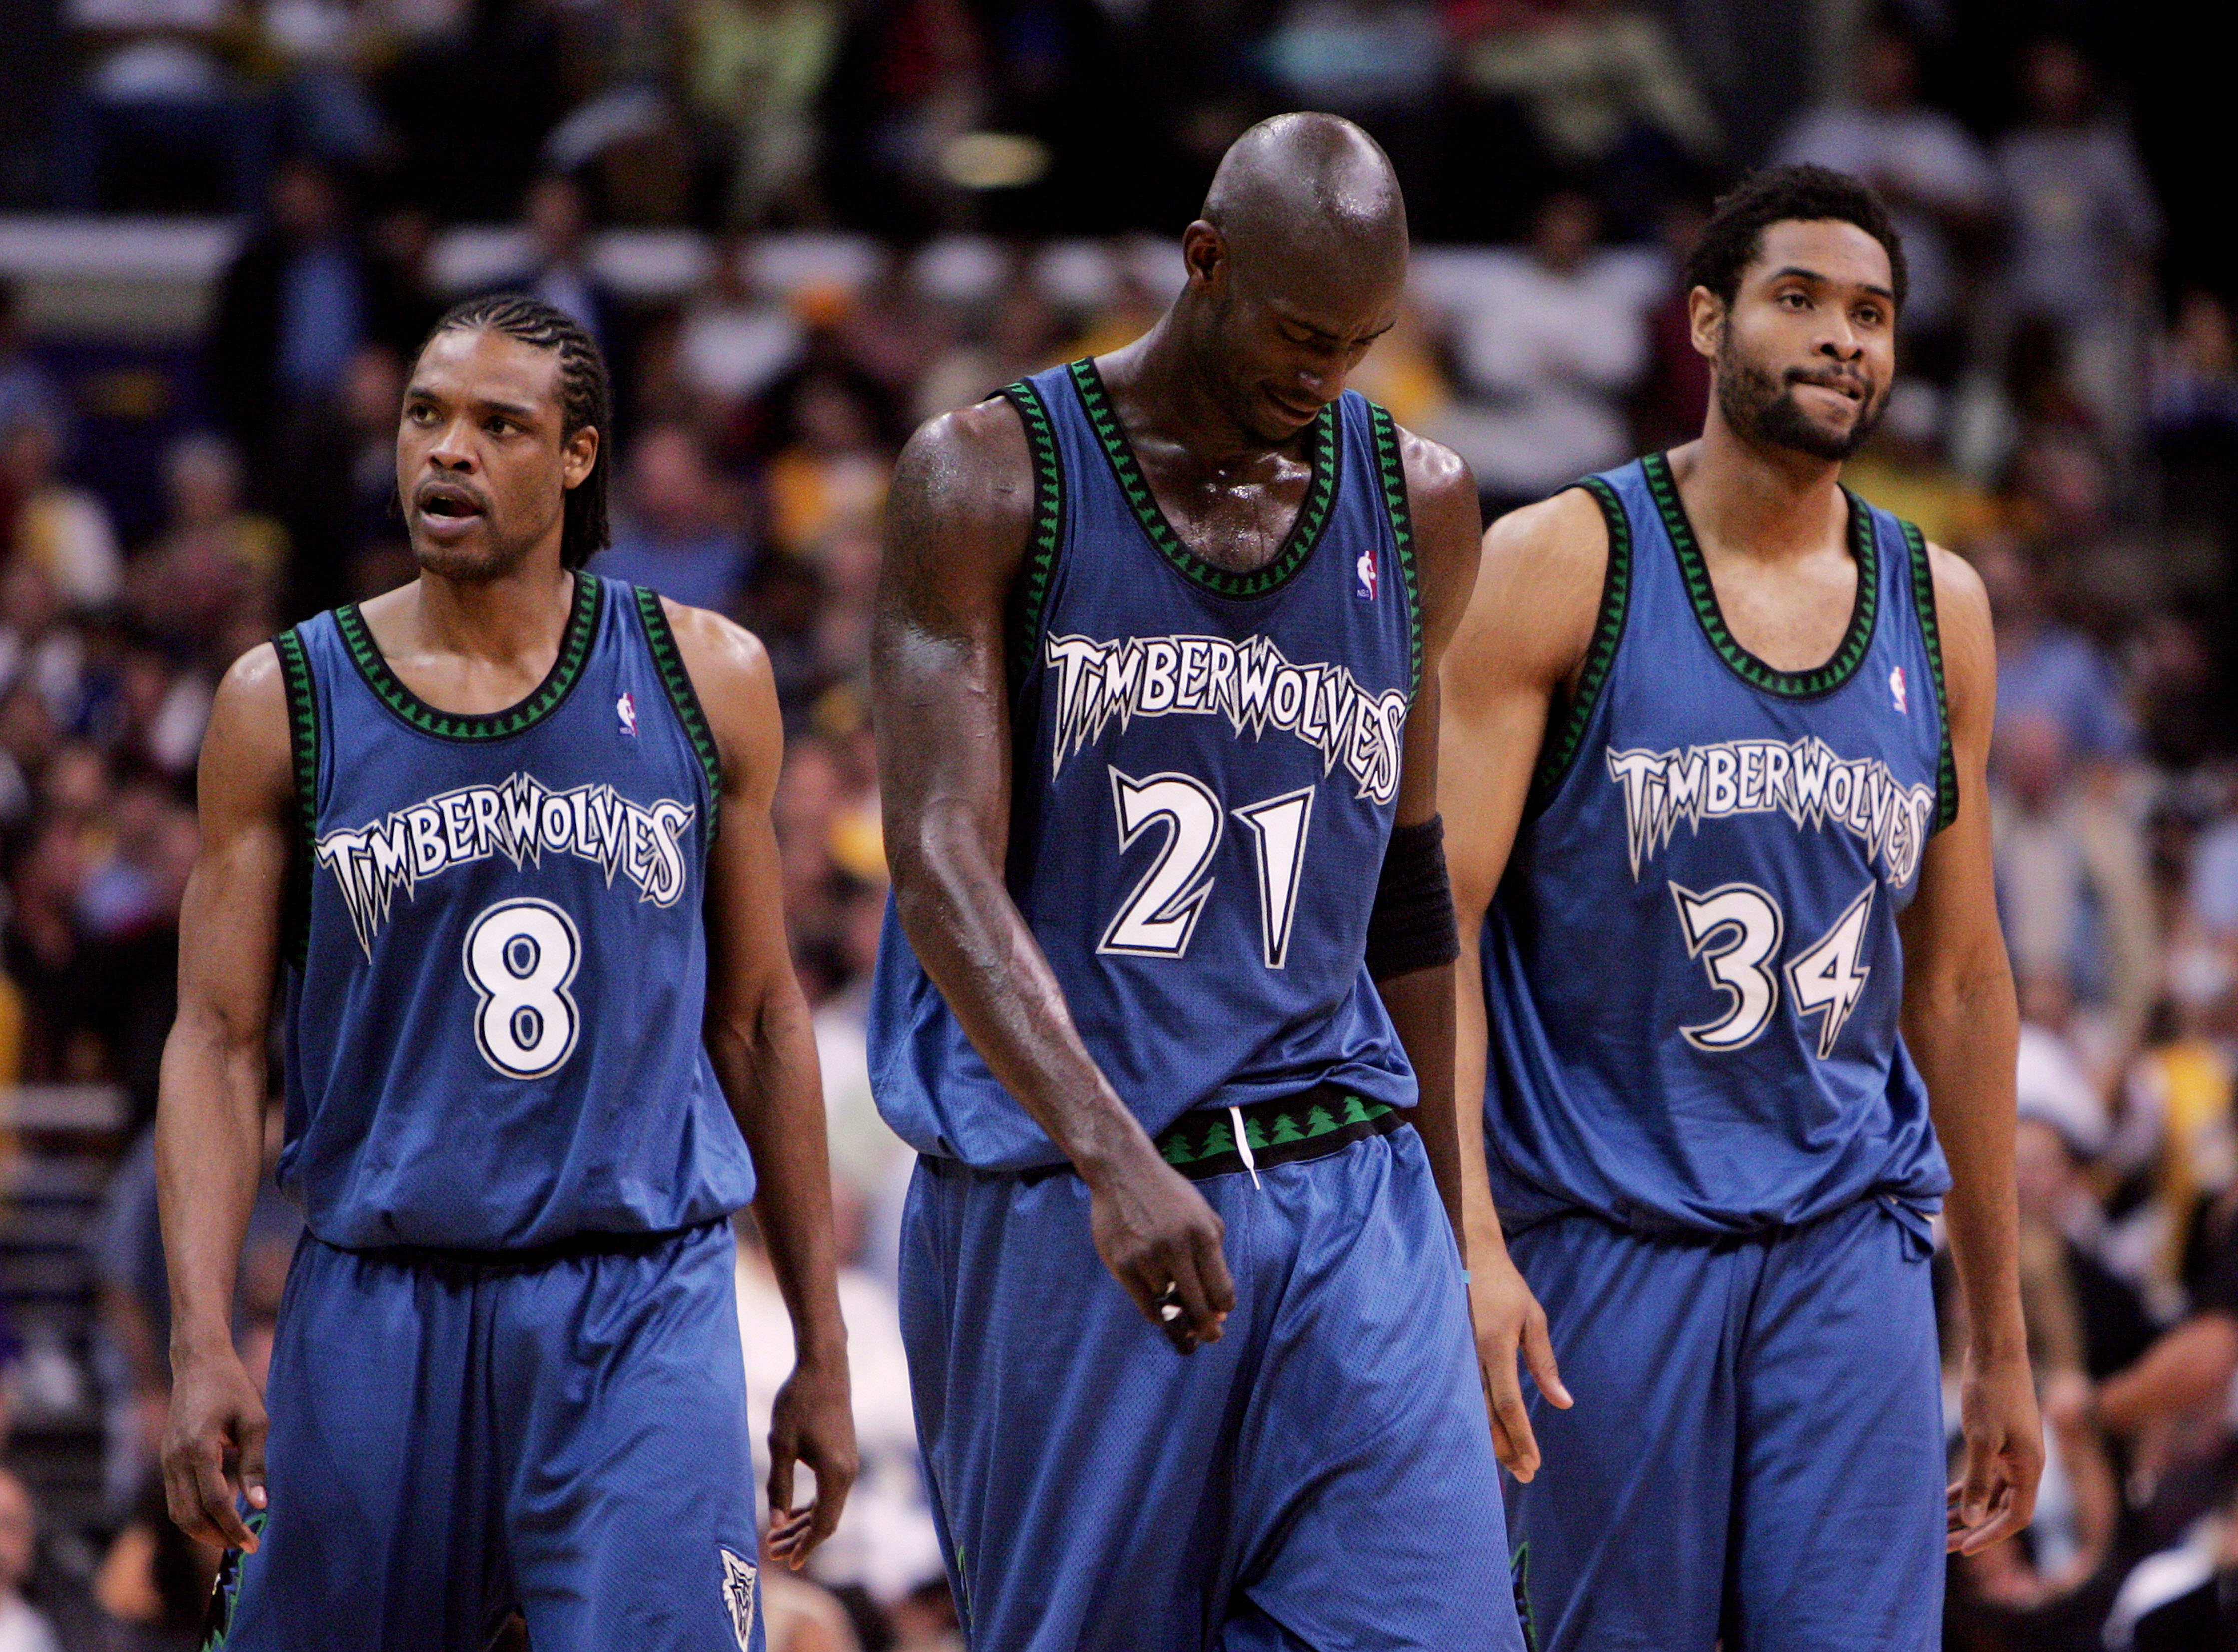 LOS ANGELES - MAY 25:  (L-R) Latrell Sprewell #8, Kevin Garnett #21 and Michael Olowokandi #34 of the Minnesota Timberwolves walk out onto the court after a time out against the Los Angeles Lakers in Game three of the Western Conference Finals during the